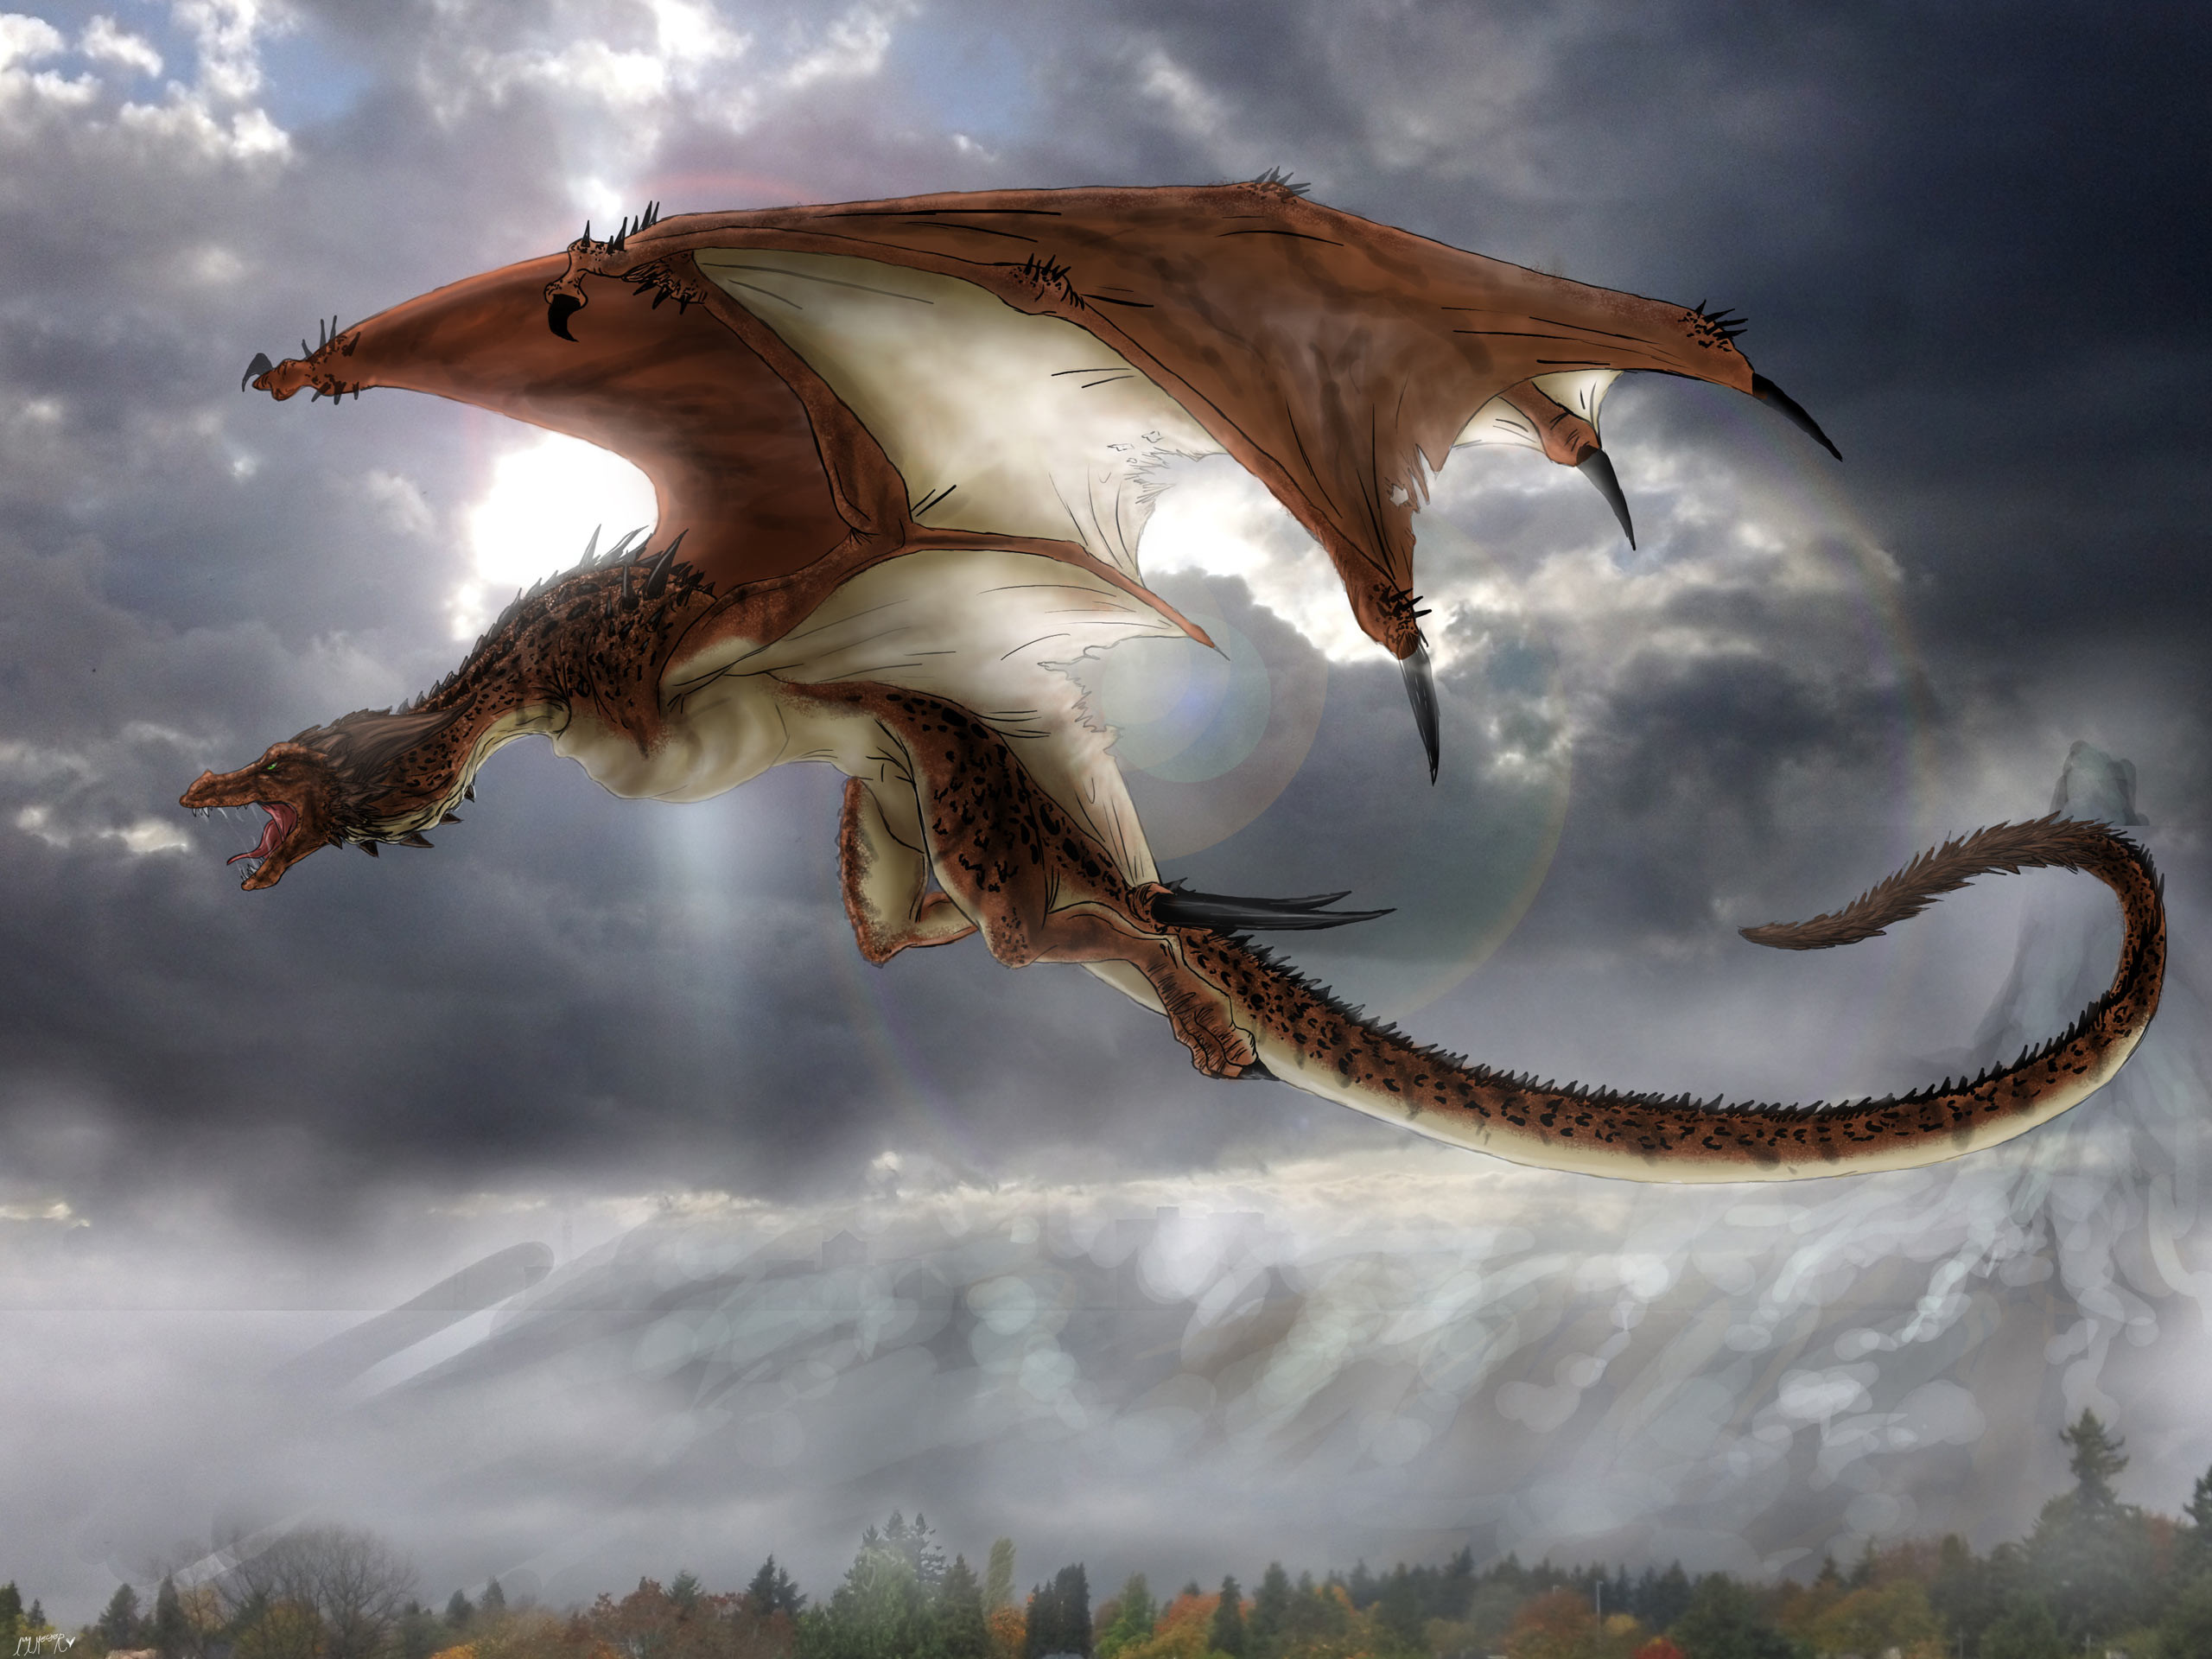 Image detail for -Mythical creatures Dragon